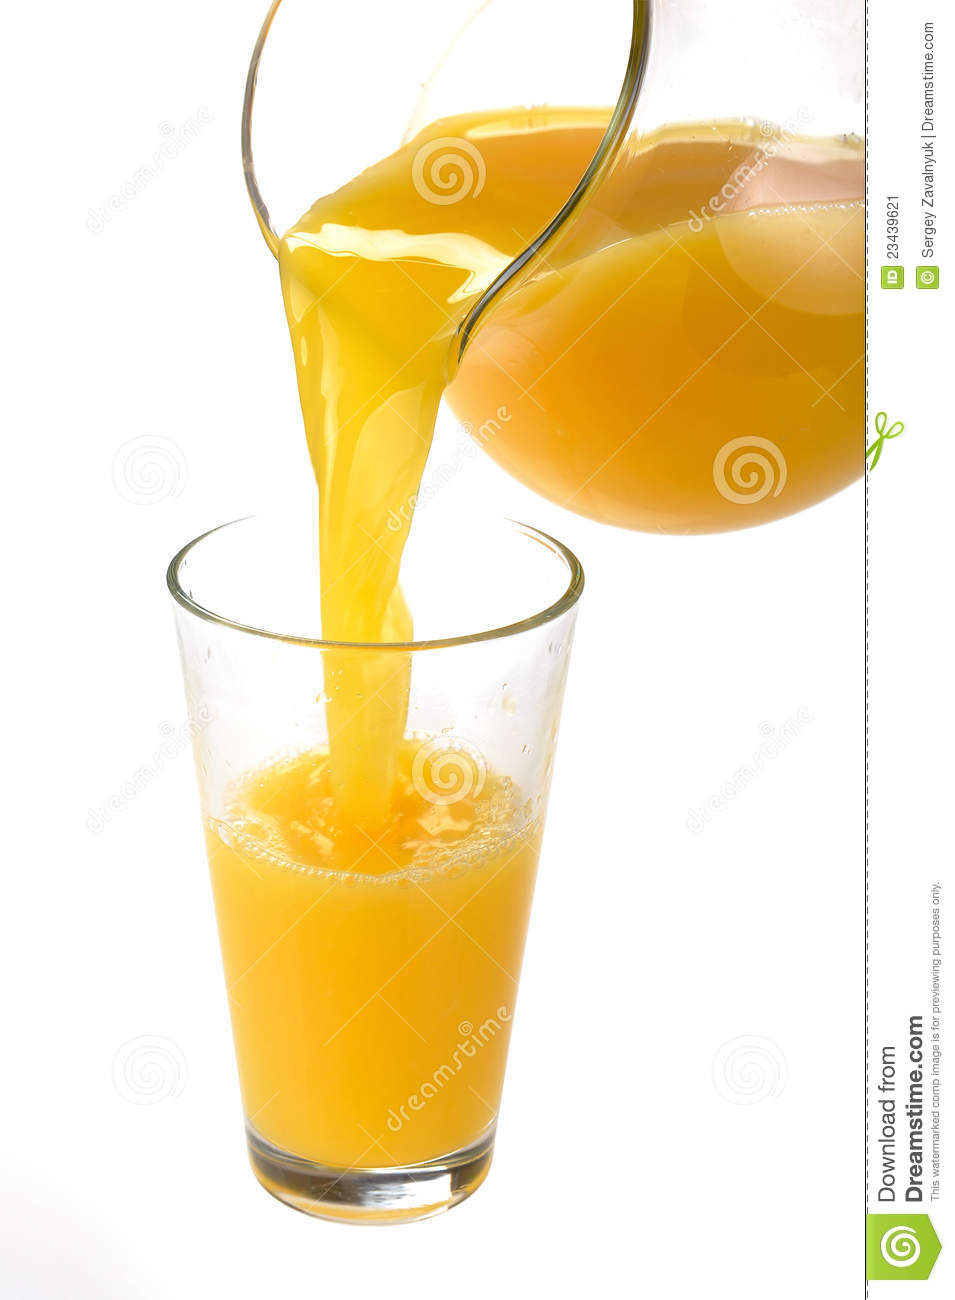 More similar stock images of ` Orange juice is poured `